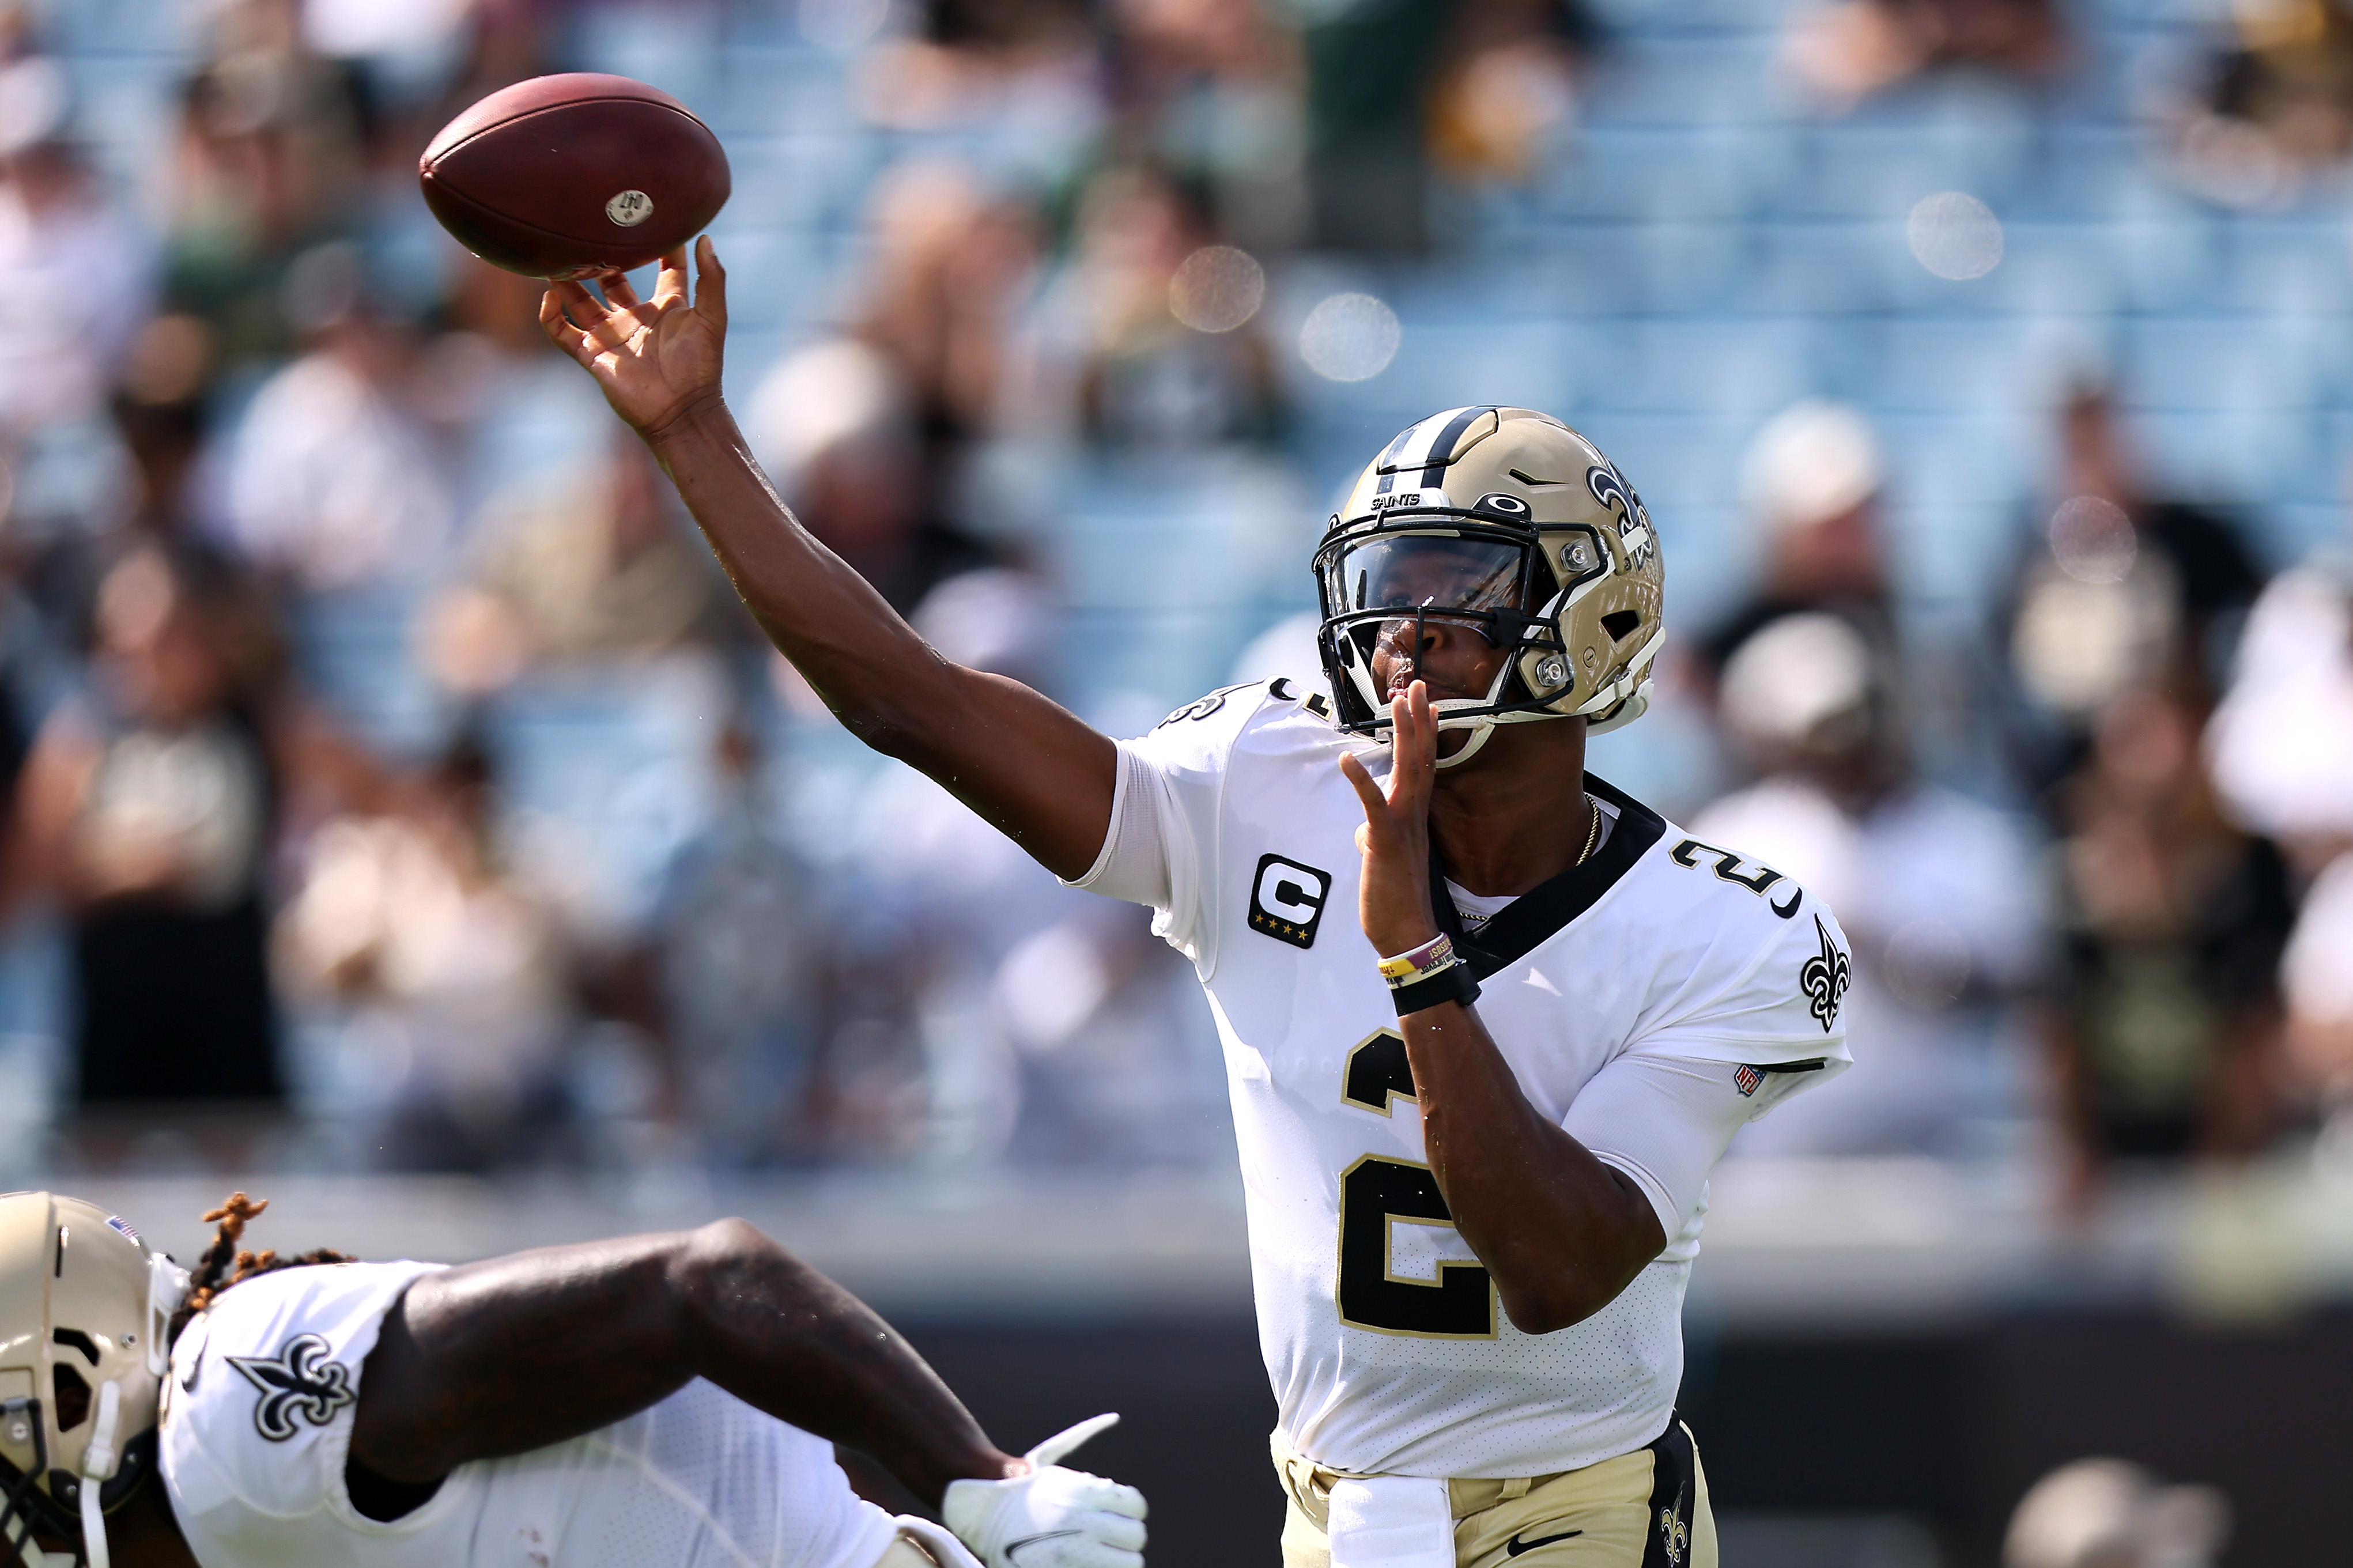 Jameis Winston #2 of the New Orleans Saints warms up prior to the game against the Green Bay Packers at TIAA Bank Field on September 12, 2021 in Jacksonville, Florida.